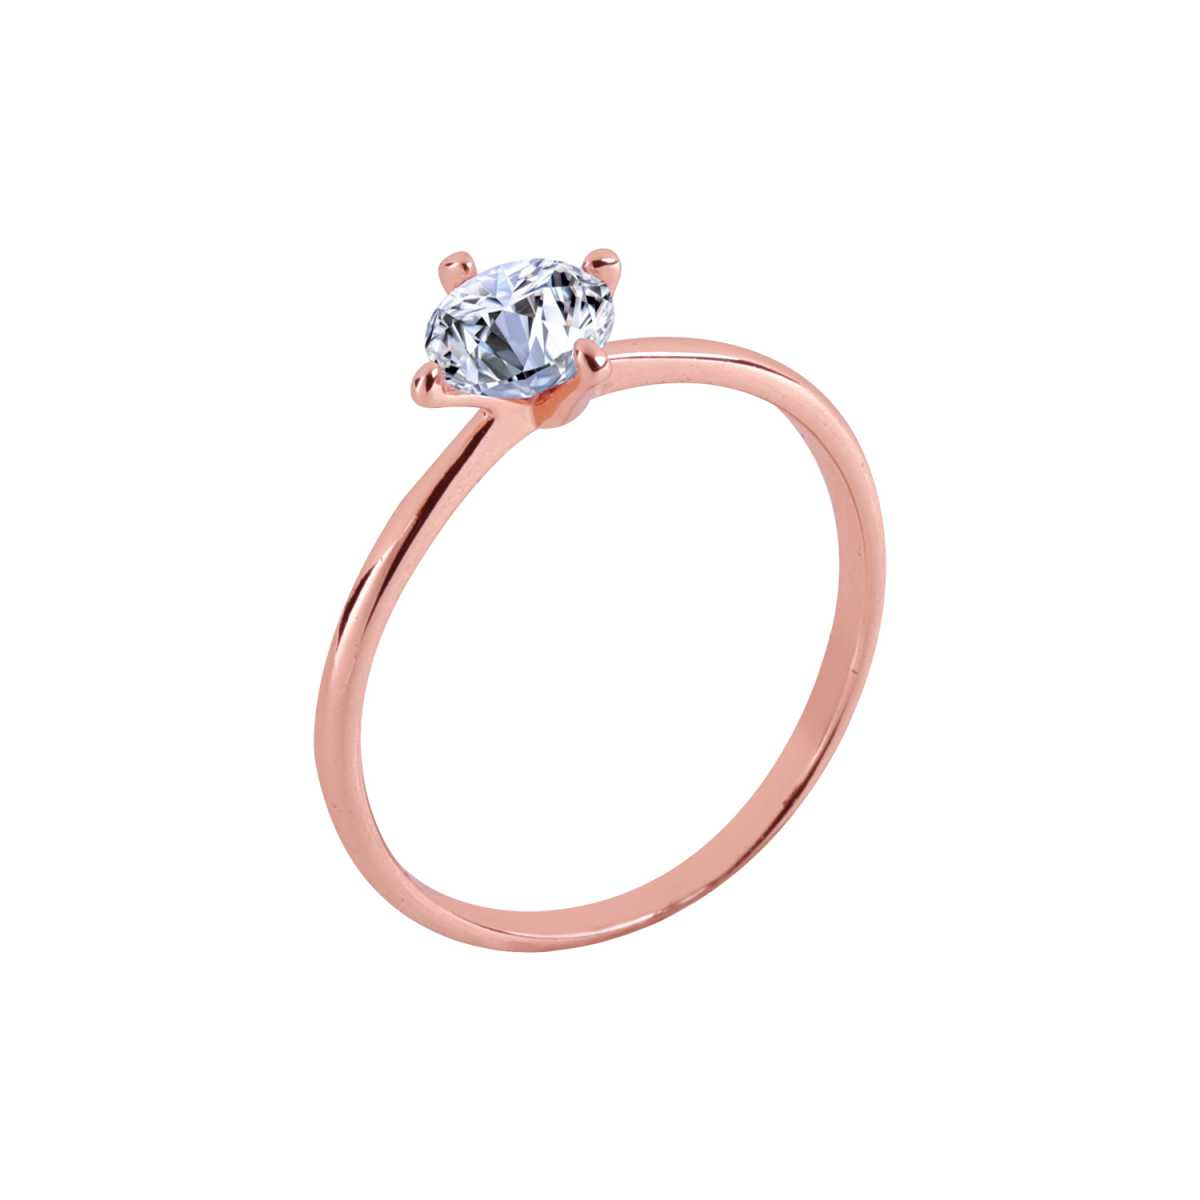 Silver Shine Rose Gold Plated Classic Solitaire Ring for Girls and women,wedding ring,jewelry,diamonds,fashion jewelry,couple rings .